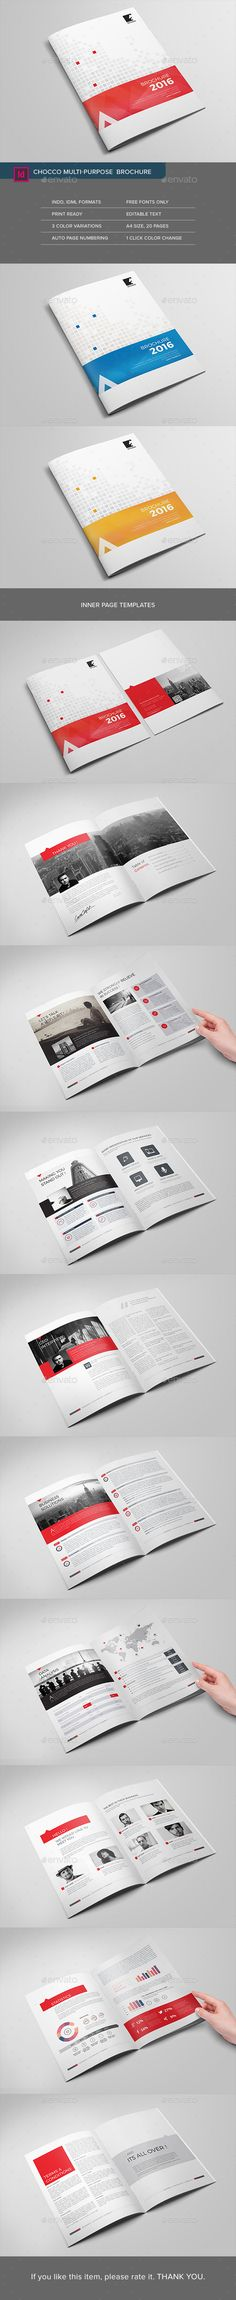 Chocco Multipurpose Brochure Template InDesign INDD. Download here: http://graphicriver.net/item/chocco-multipurpose-brochure/15507375?ref=ksioks